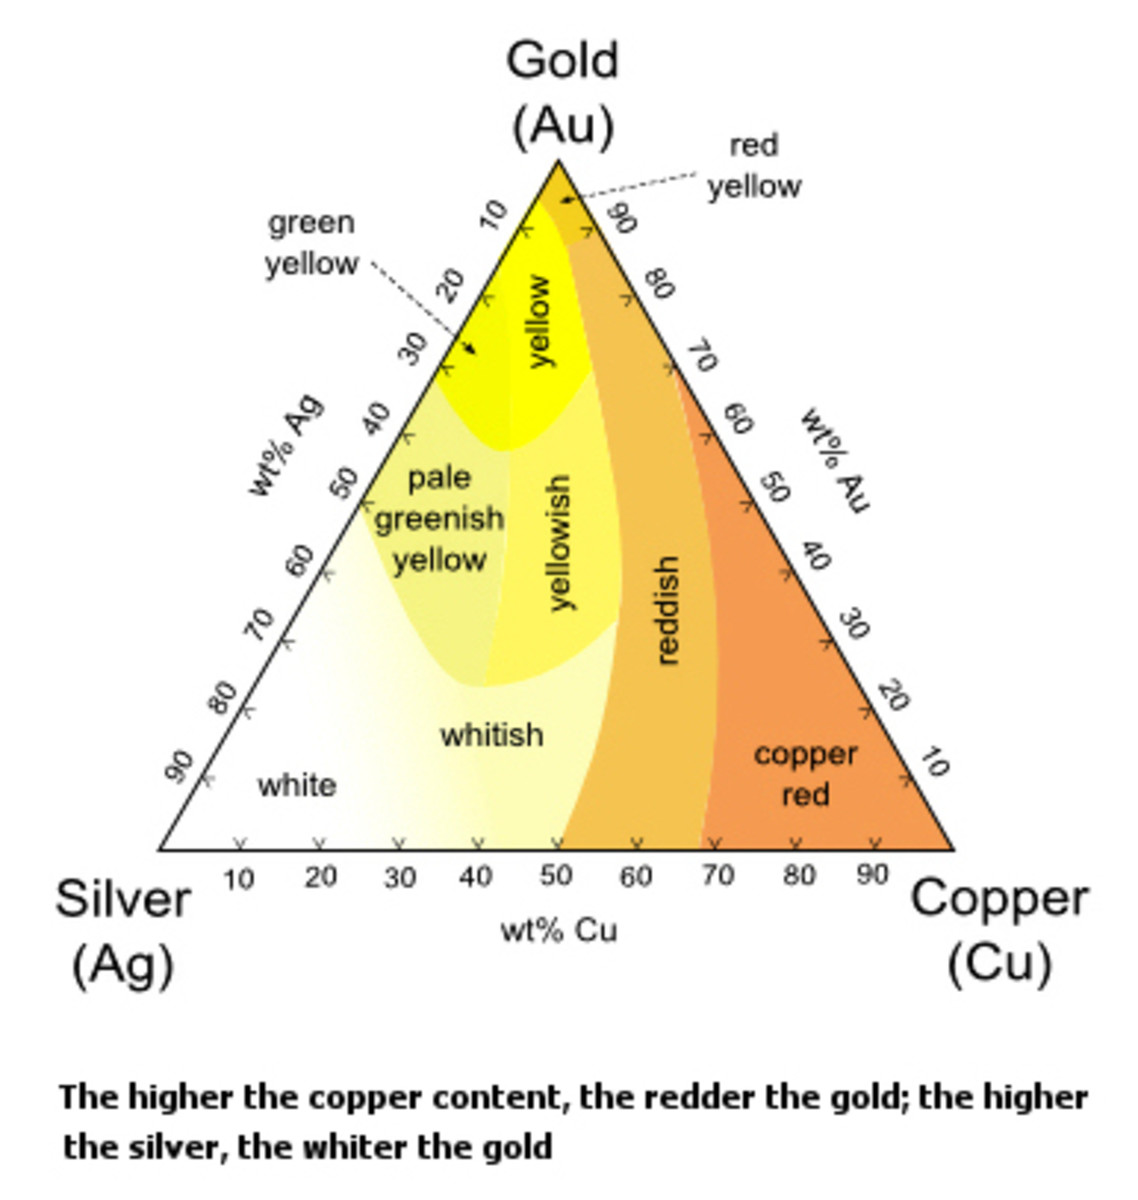 14k-white-gold-the-facts